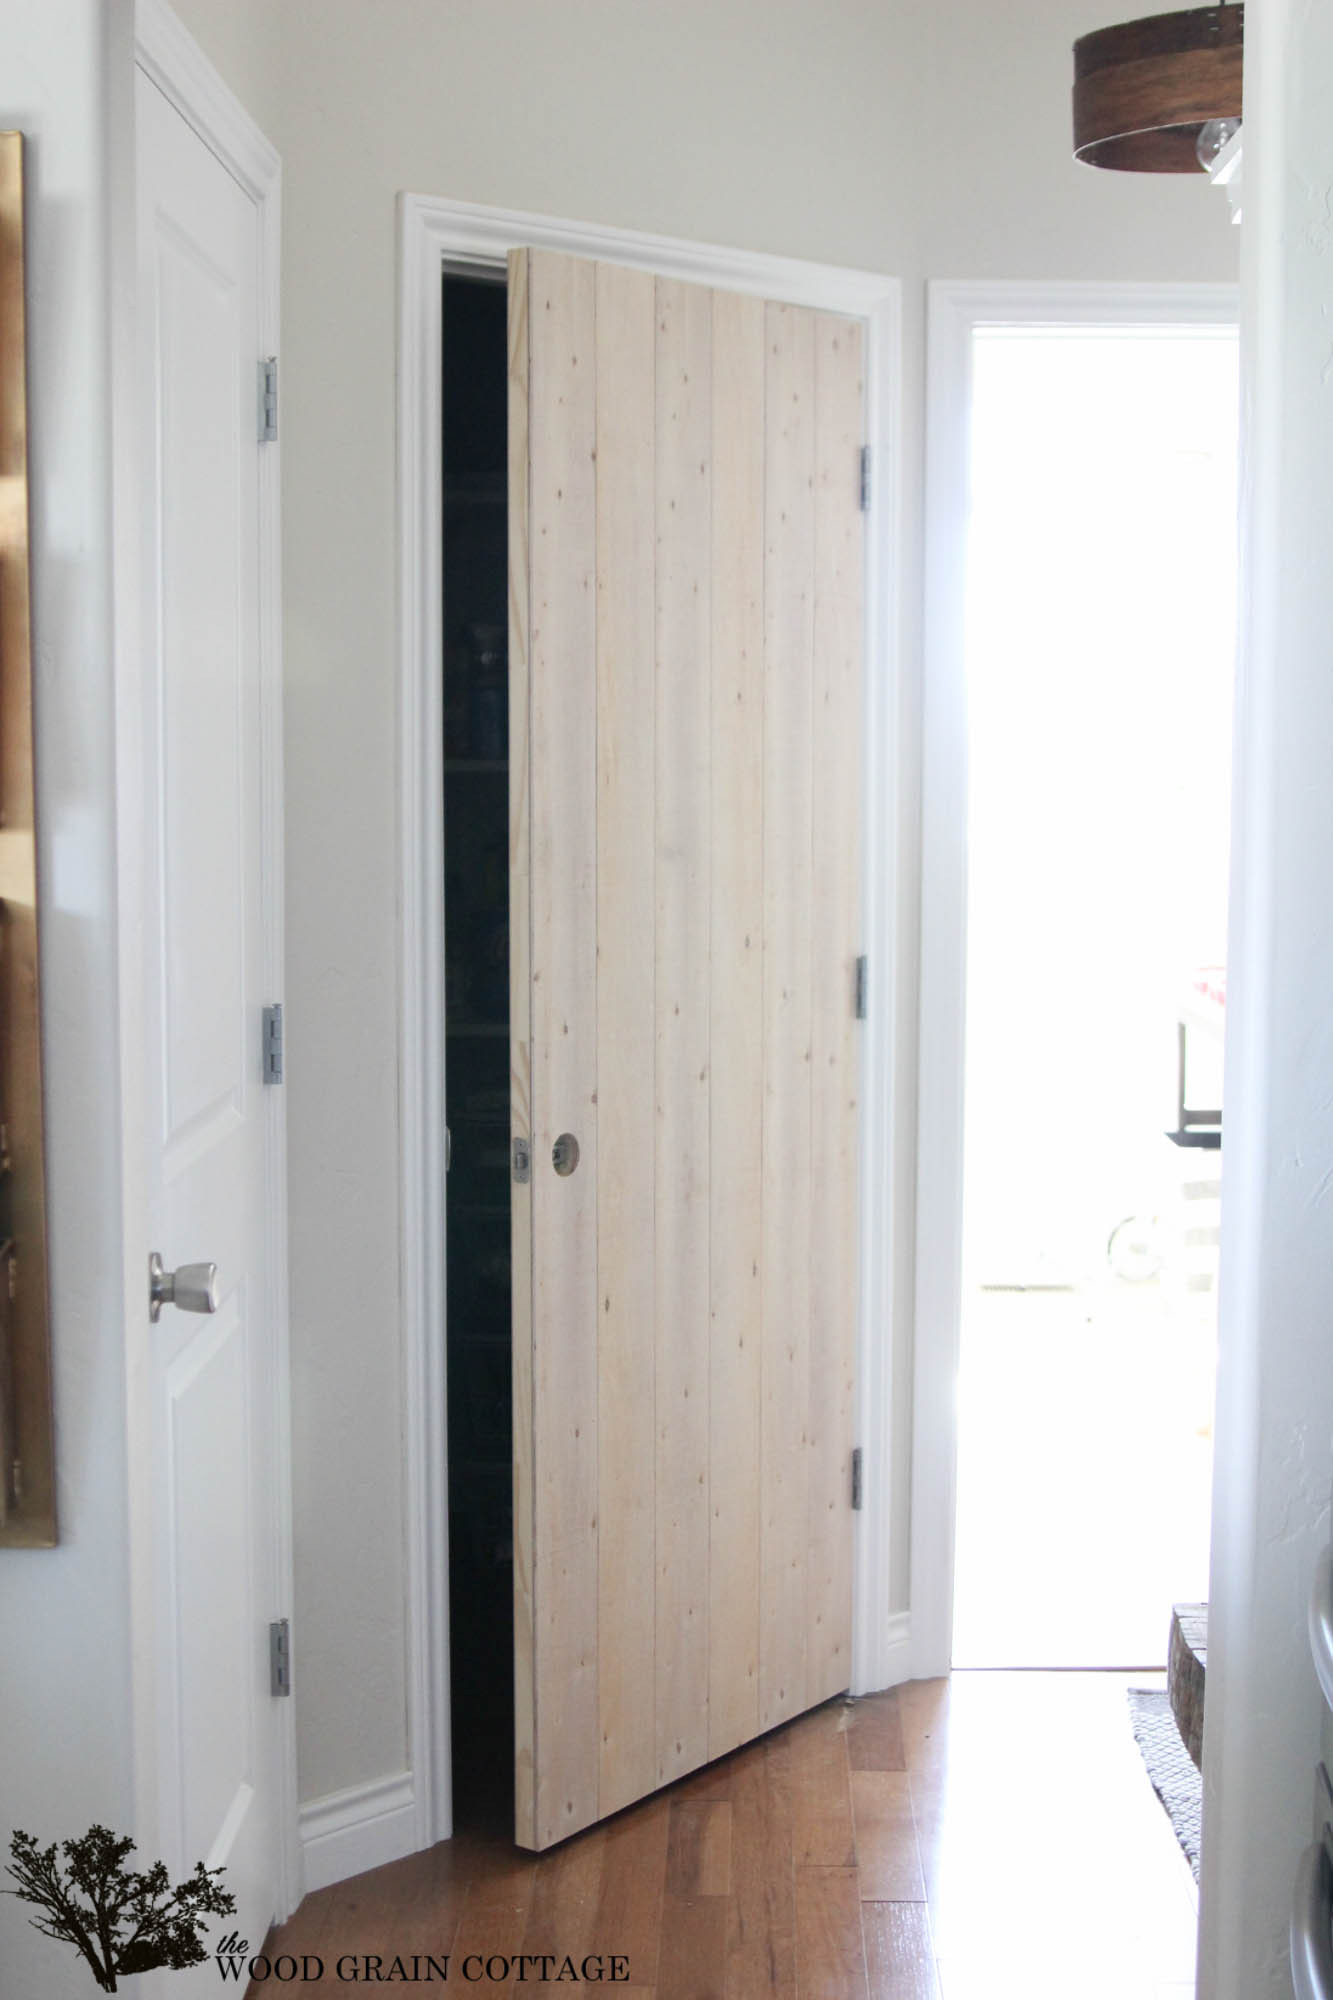 Best ideas about DIY Wood Door . Save or Pin DIY Wood Planked Pantry Door The Wood Grain Cottage Now.